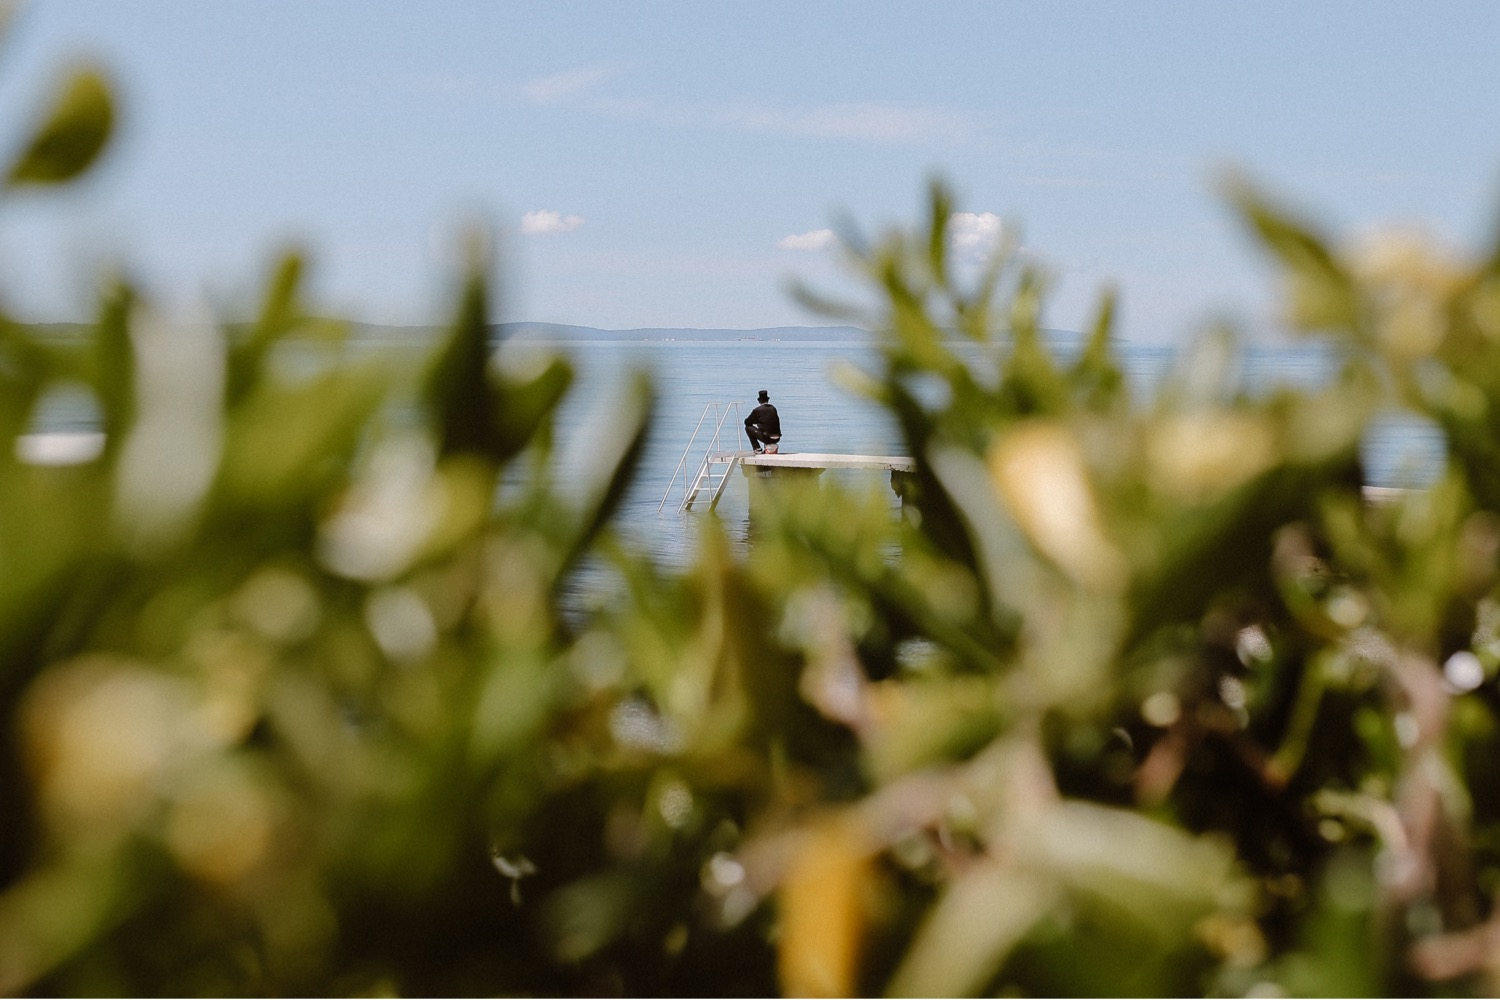 Croatia beach elopement hilke thomas love and ventures photography 08 | Croatia Elopement Photographer and Videographer